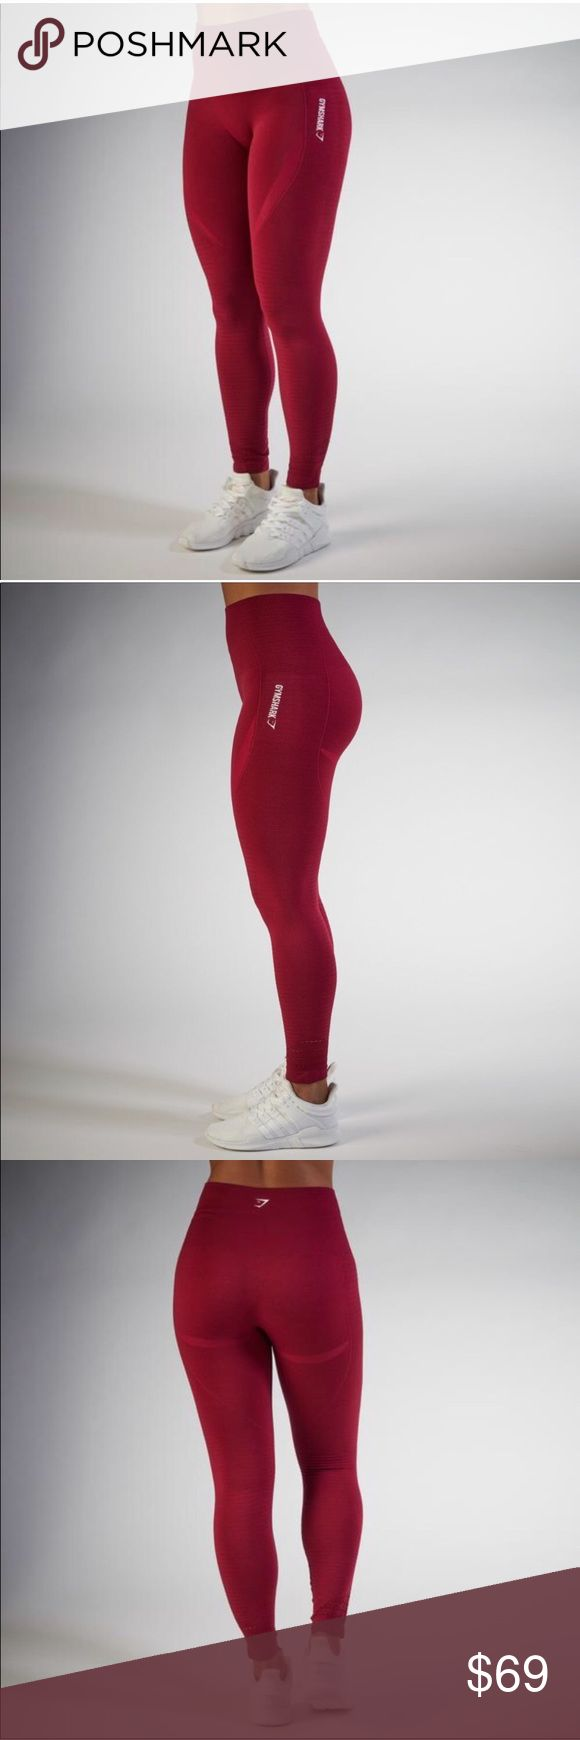 Gymshark Red Seamless Full Length Leggings Too small for me. ISO of S. Also have this exact legging in slate grey for sale. Brand new. NWT. Only tried on. Price firm to break even with shipping. Took 2 weeks to arrive from the U.K. NOTE last photo is of cropped version. These are full length!! Sold out on their website!! Gymshark Pants Leggings